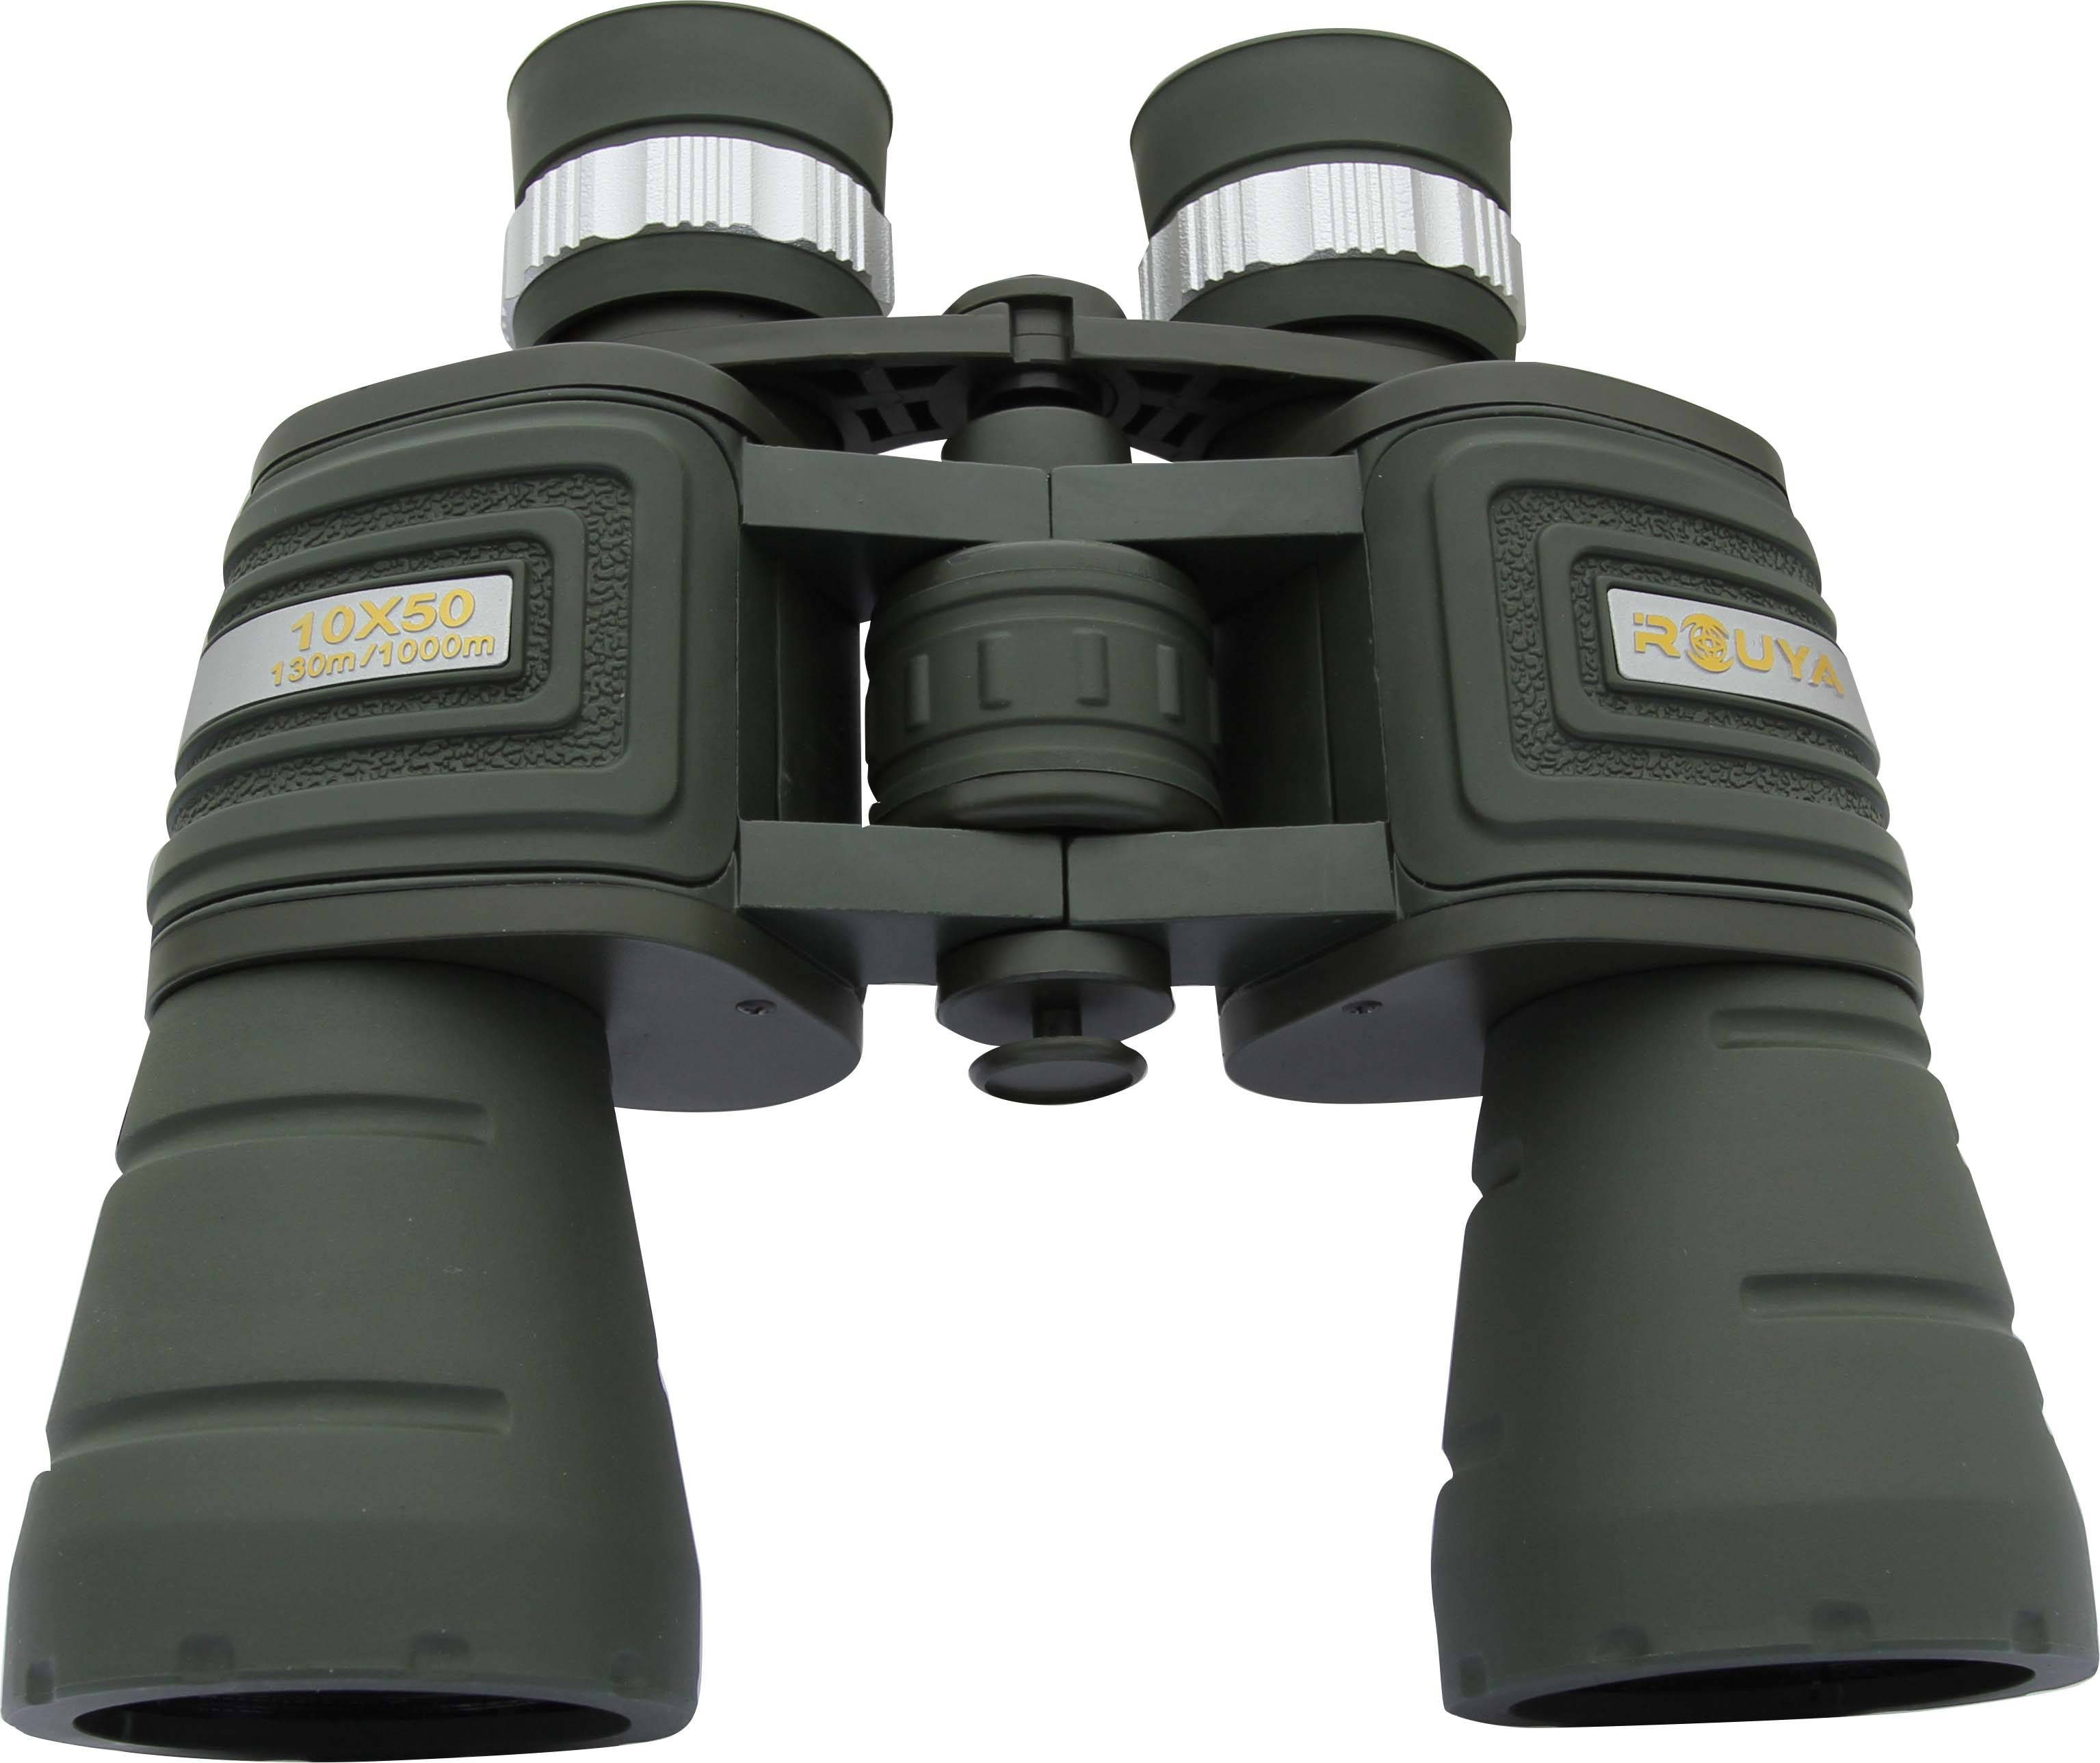 (BM-5010 ) 7X50 Long Eye Reliefoutdoor binoculars